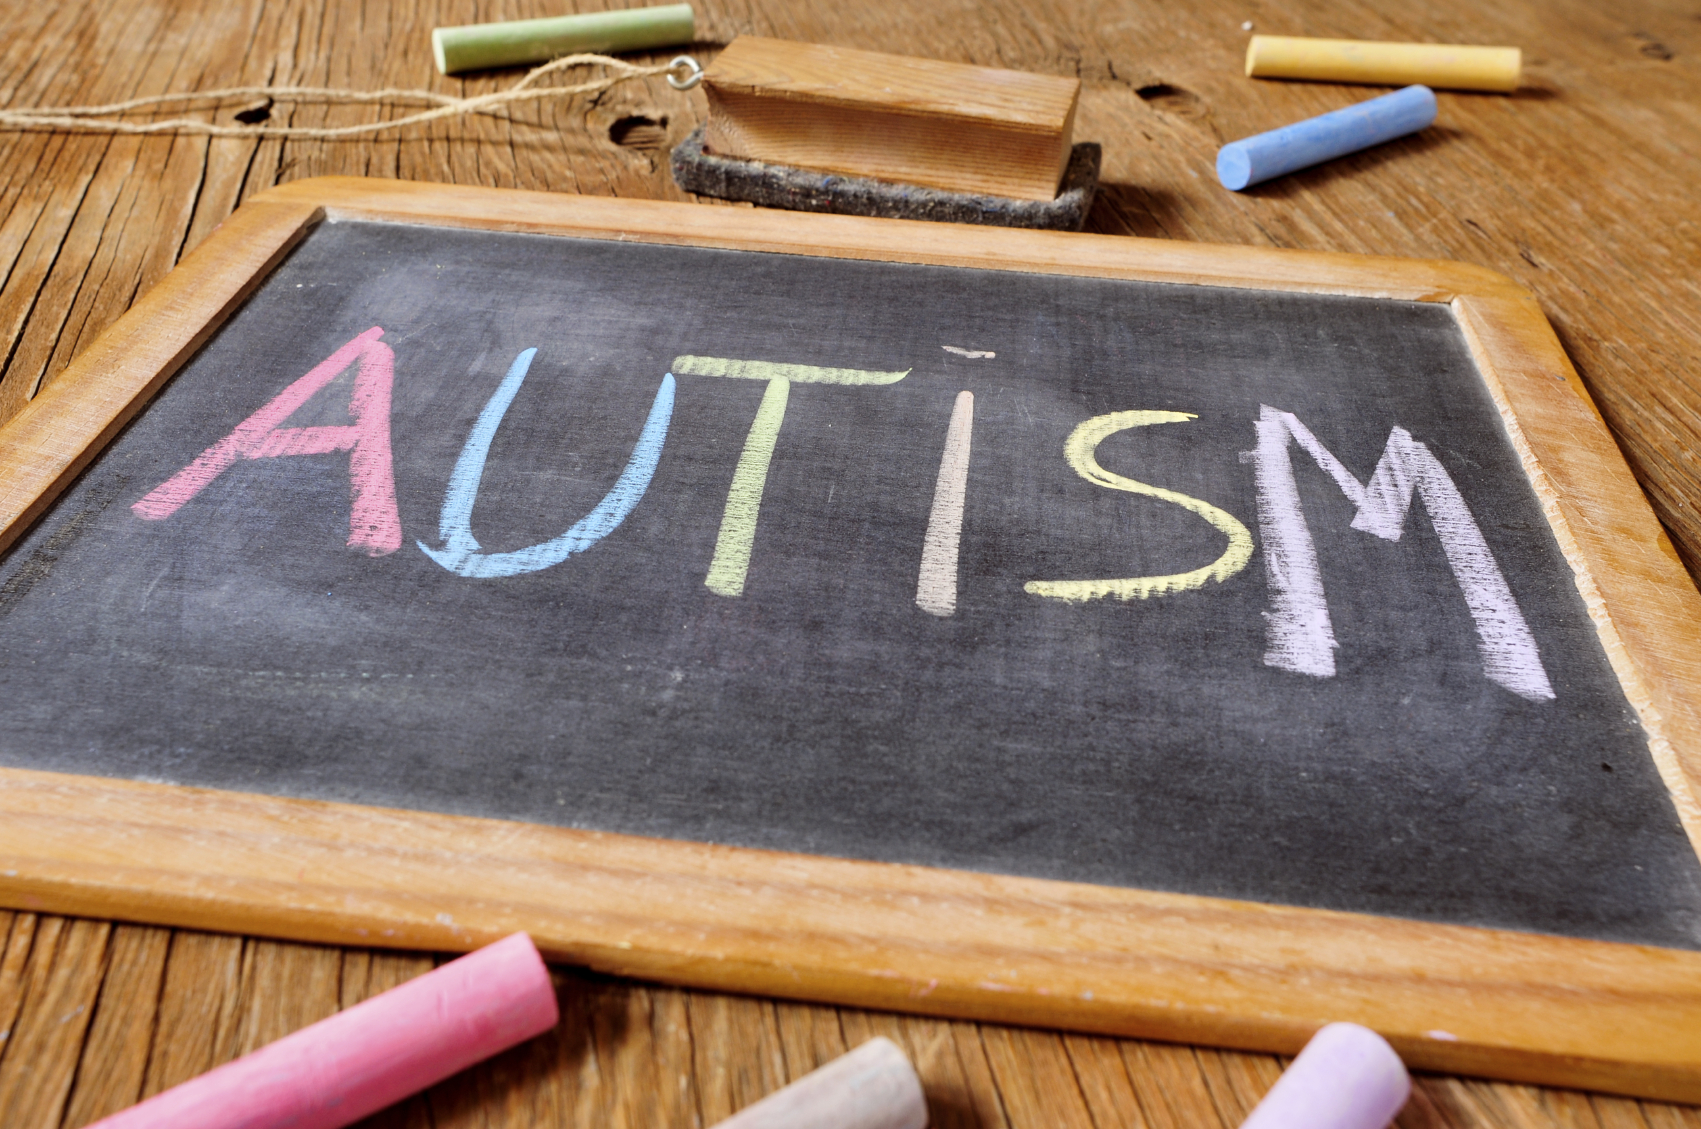 Autisms Costs To Us Economy Estimated >> Autism Costs Could Skyrocket Experts Warn Cbs News